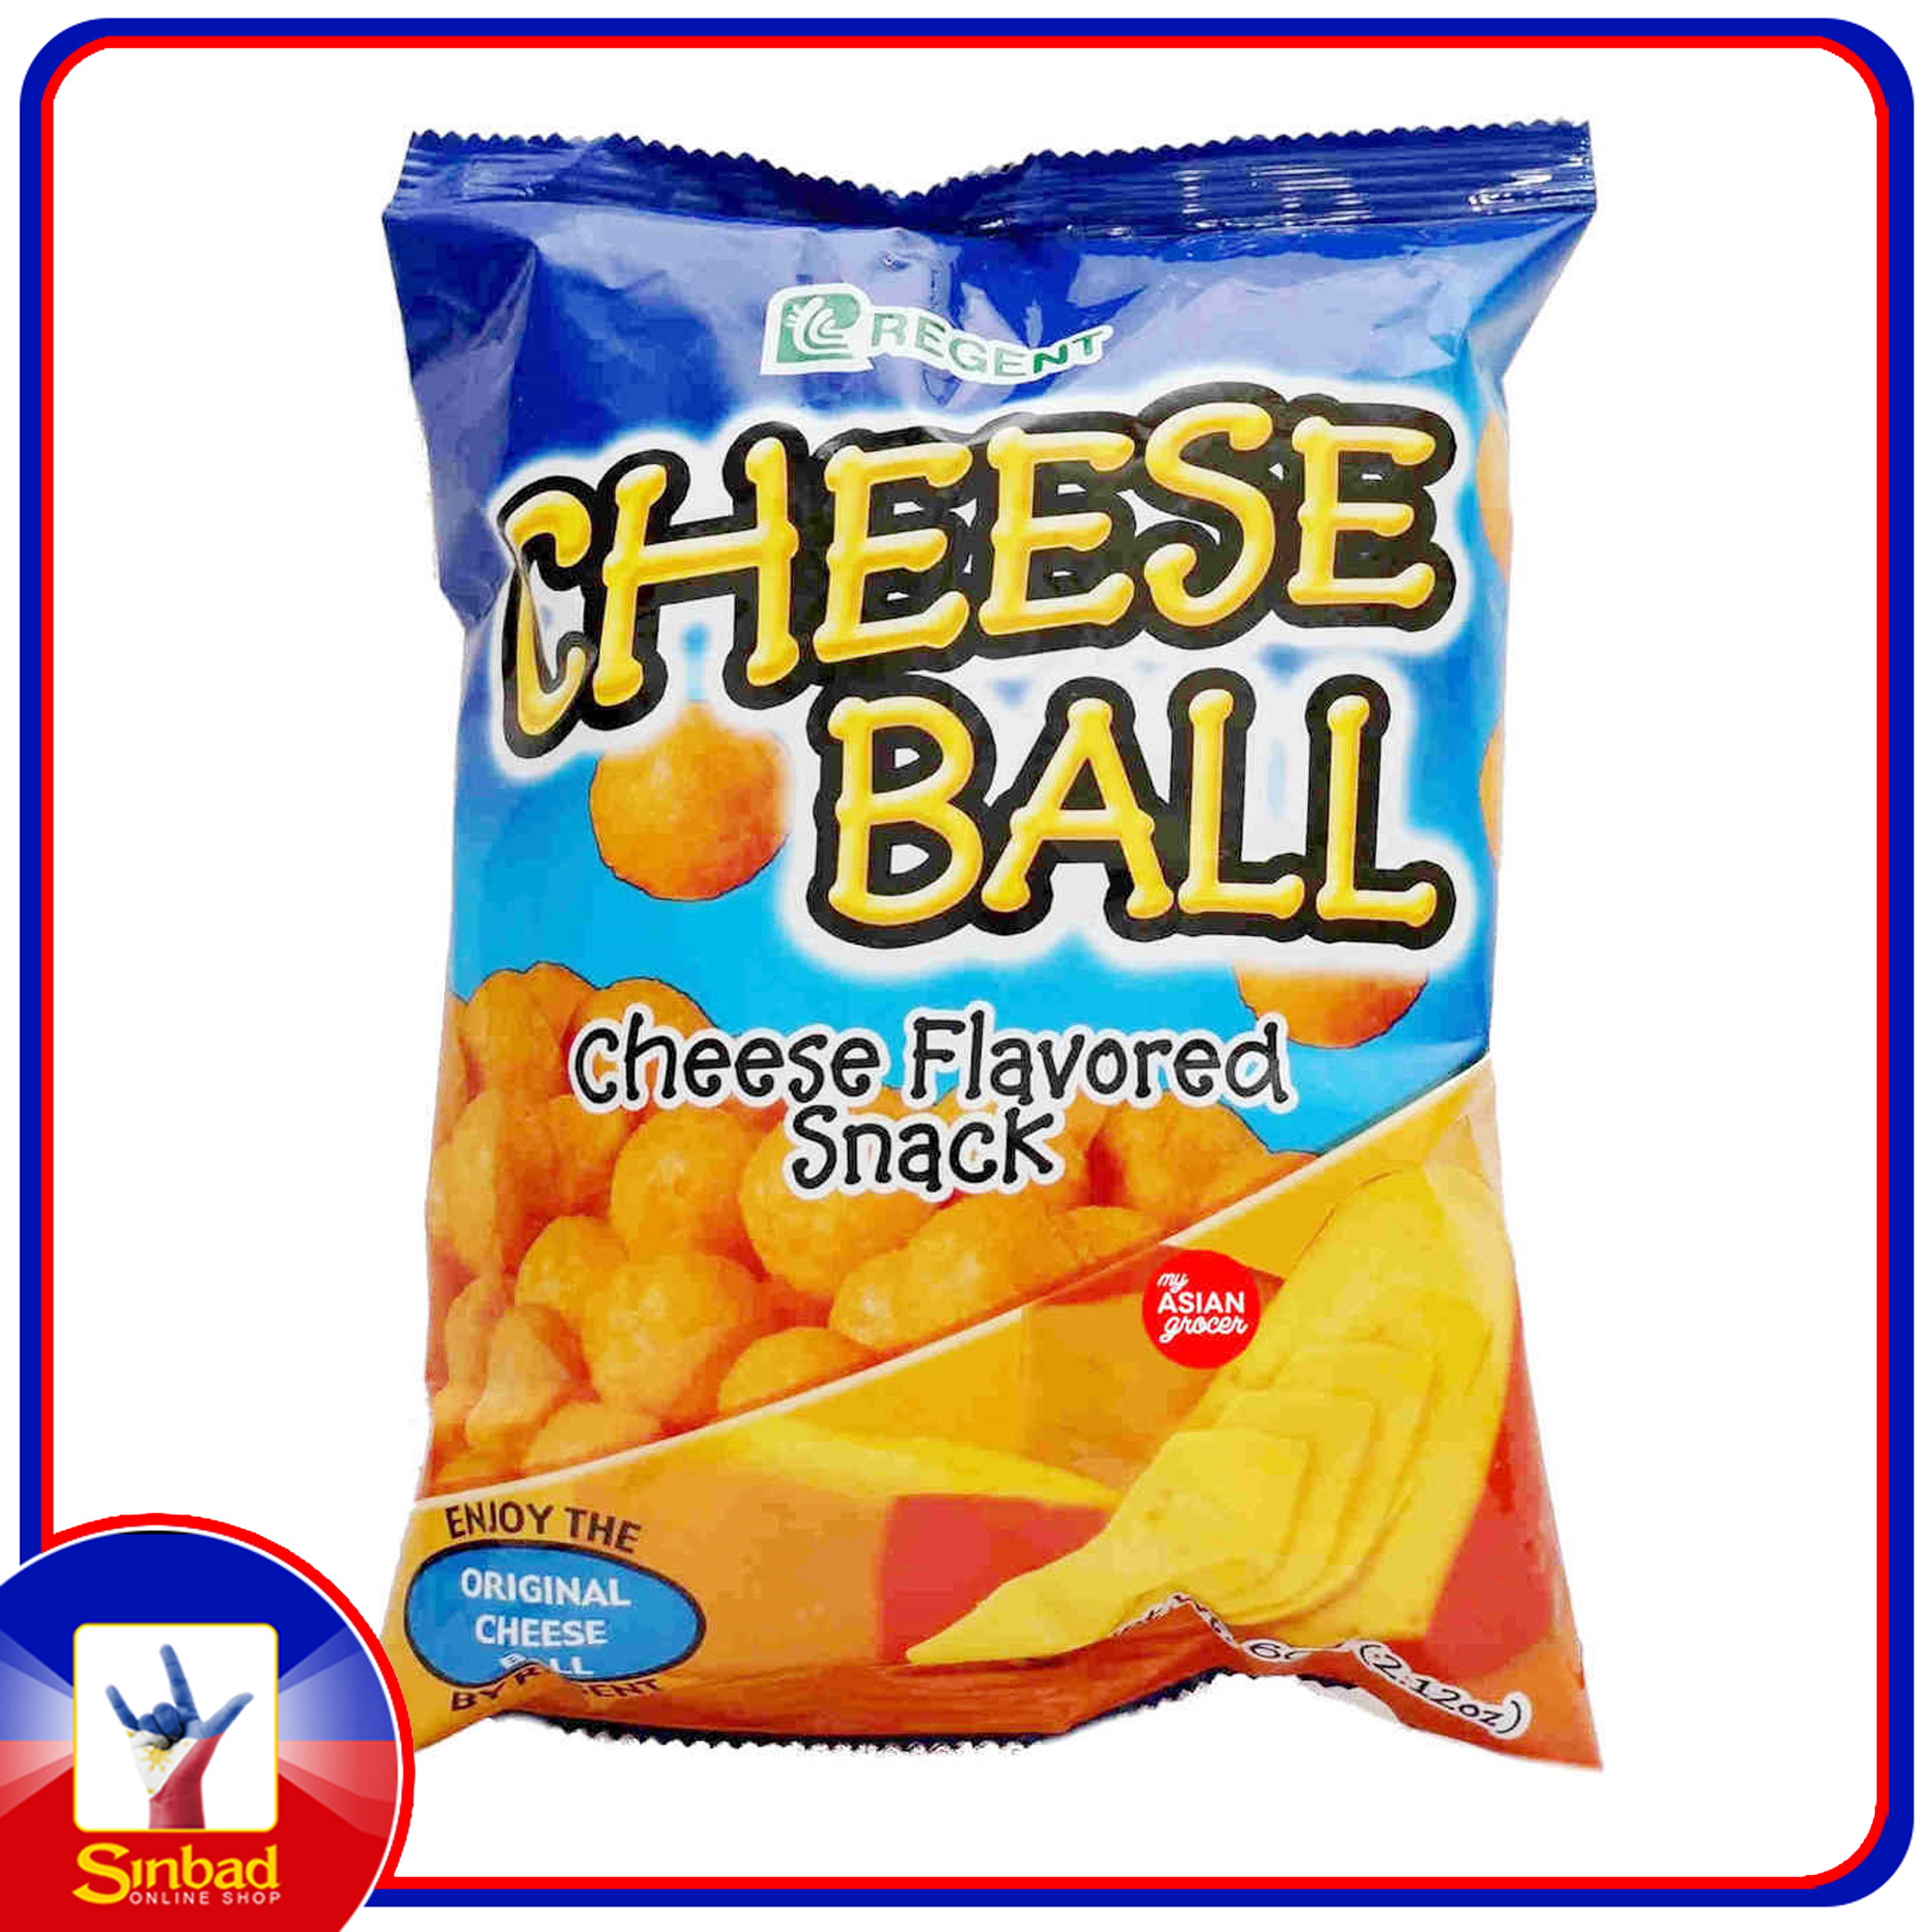 CHEESE BALL CHEESE FLAVORED SNACK